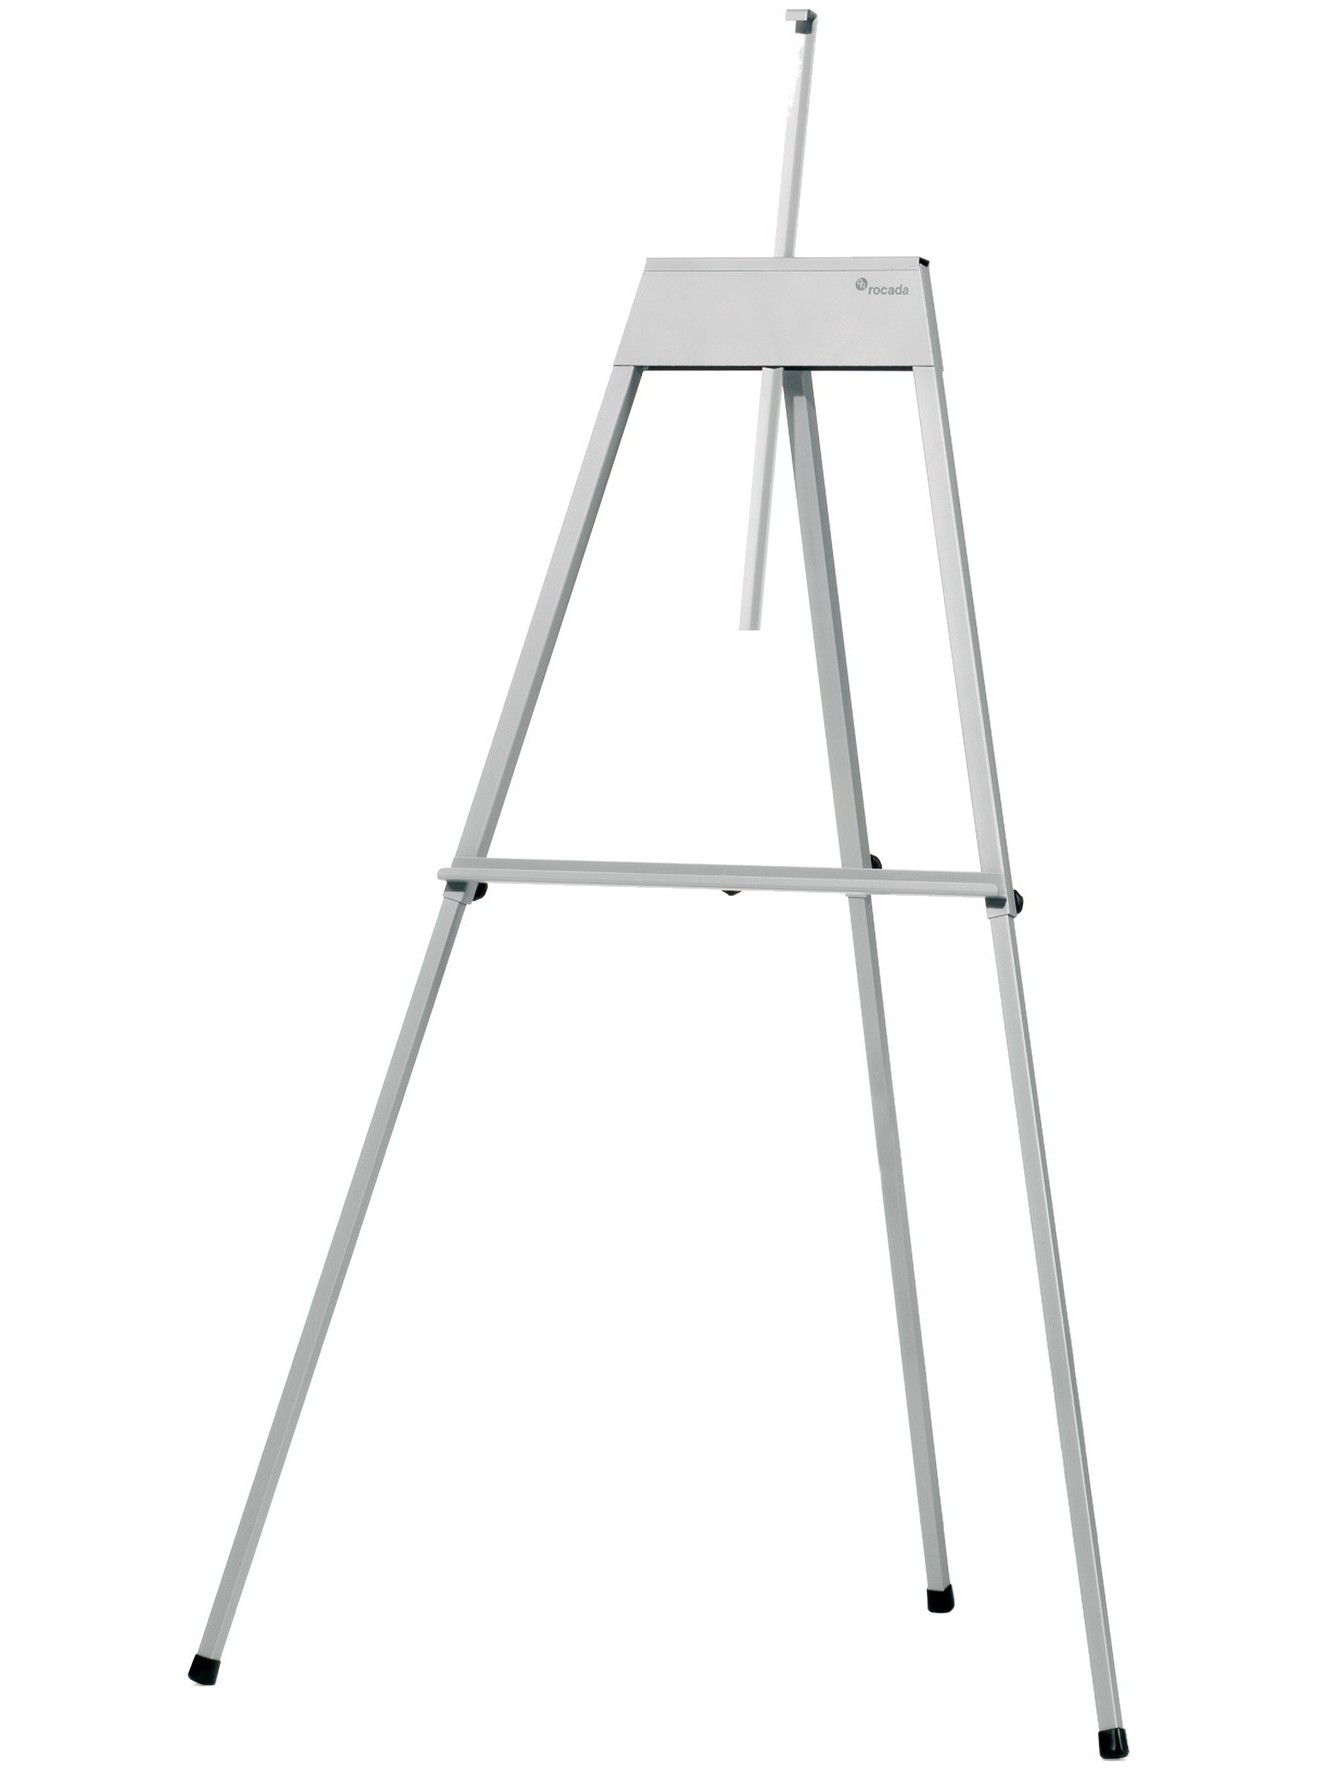 SUPPORT TRIPODE Slates SERIES 8000